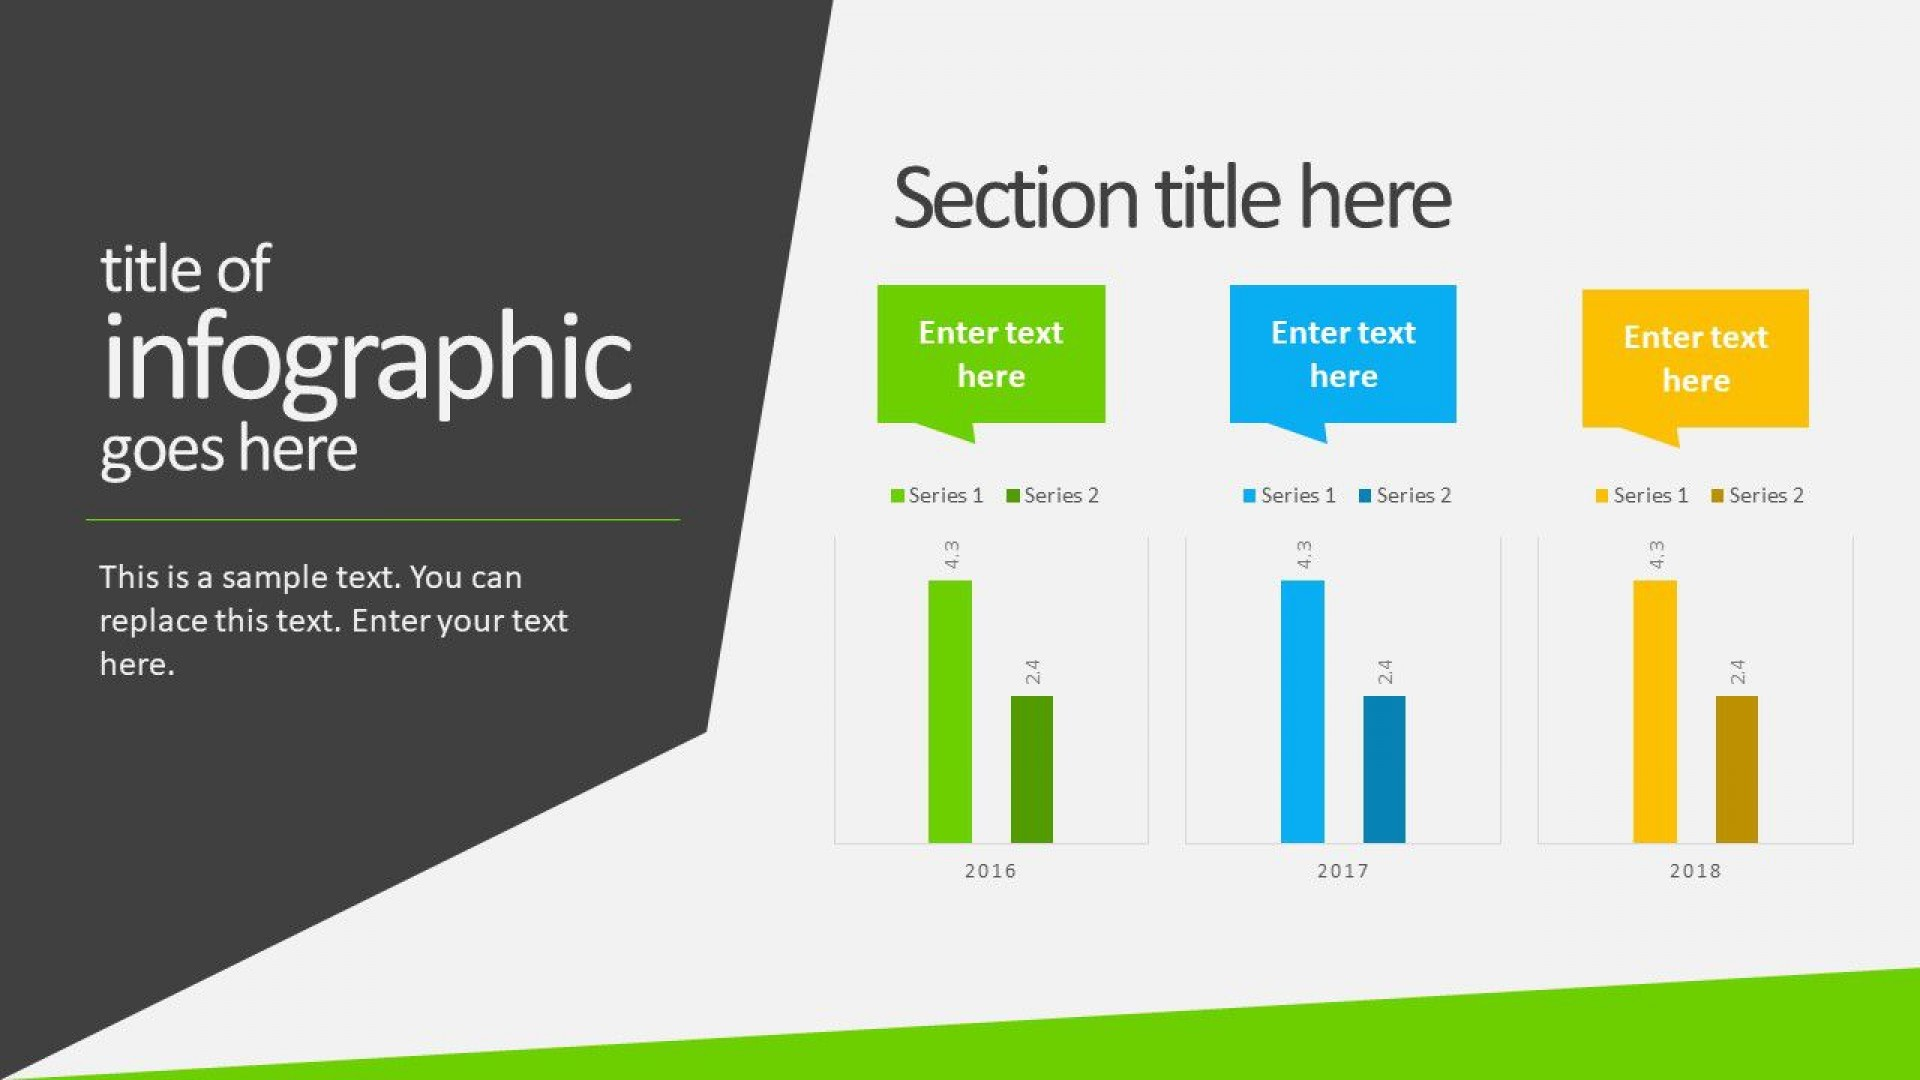 006 Unforgettable Animation Powerpoint Template Free Download Image  3d Animated 2016 Microsoft 2007 20141920